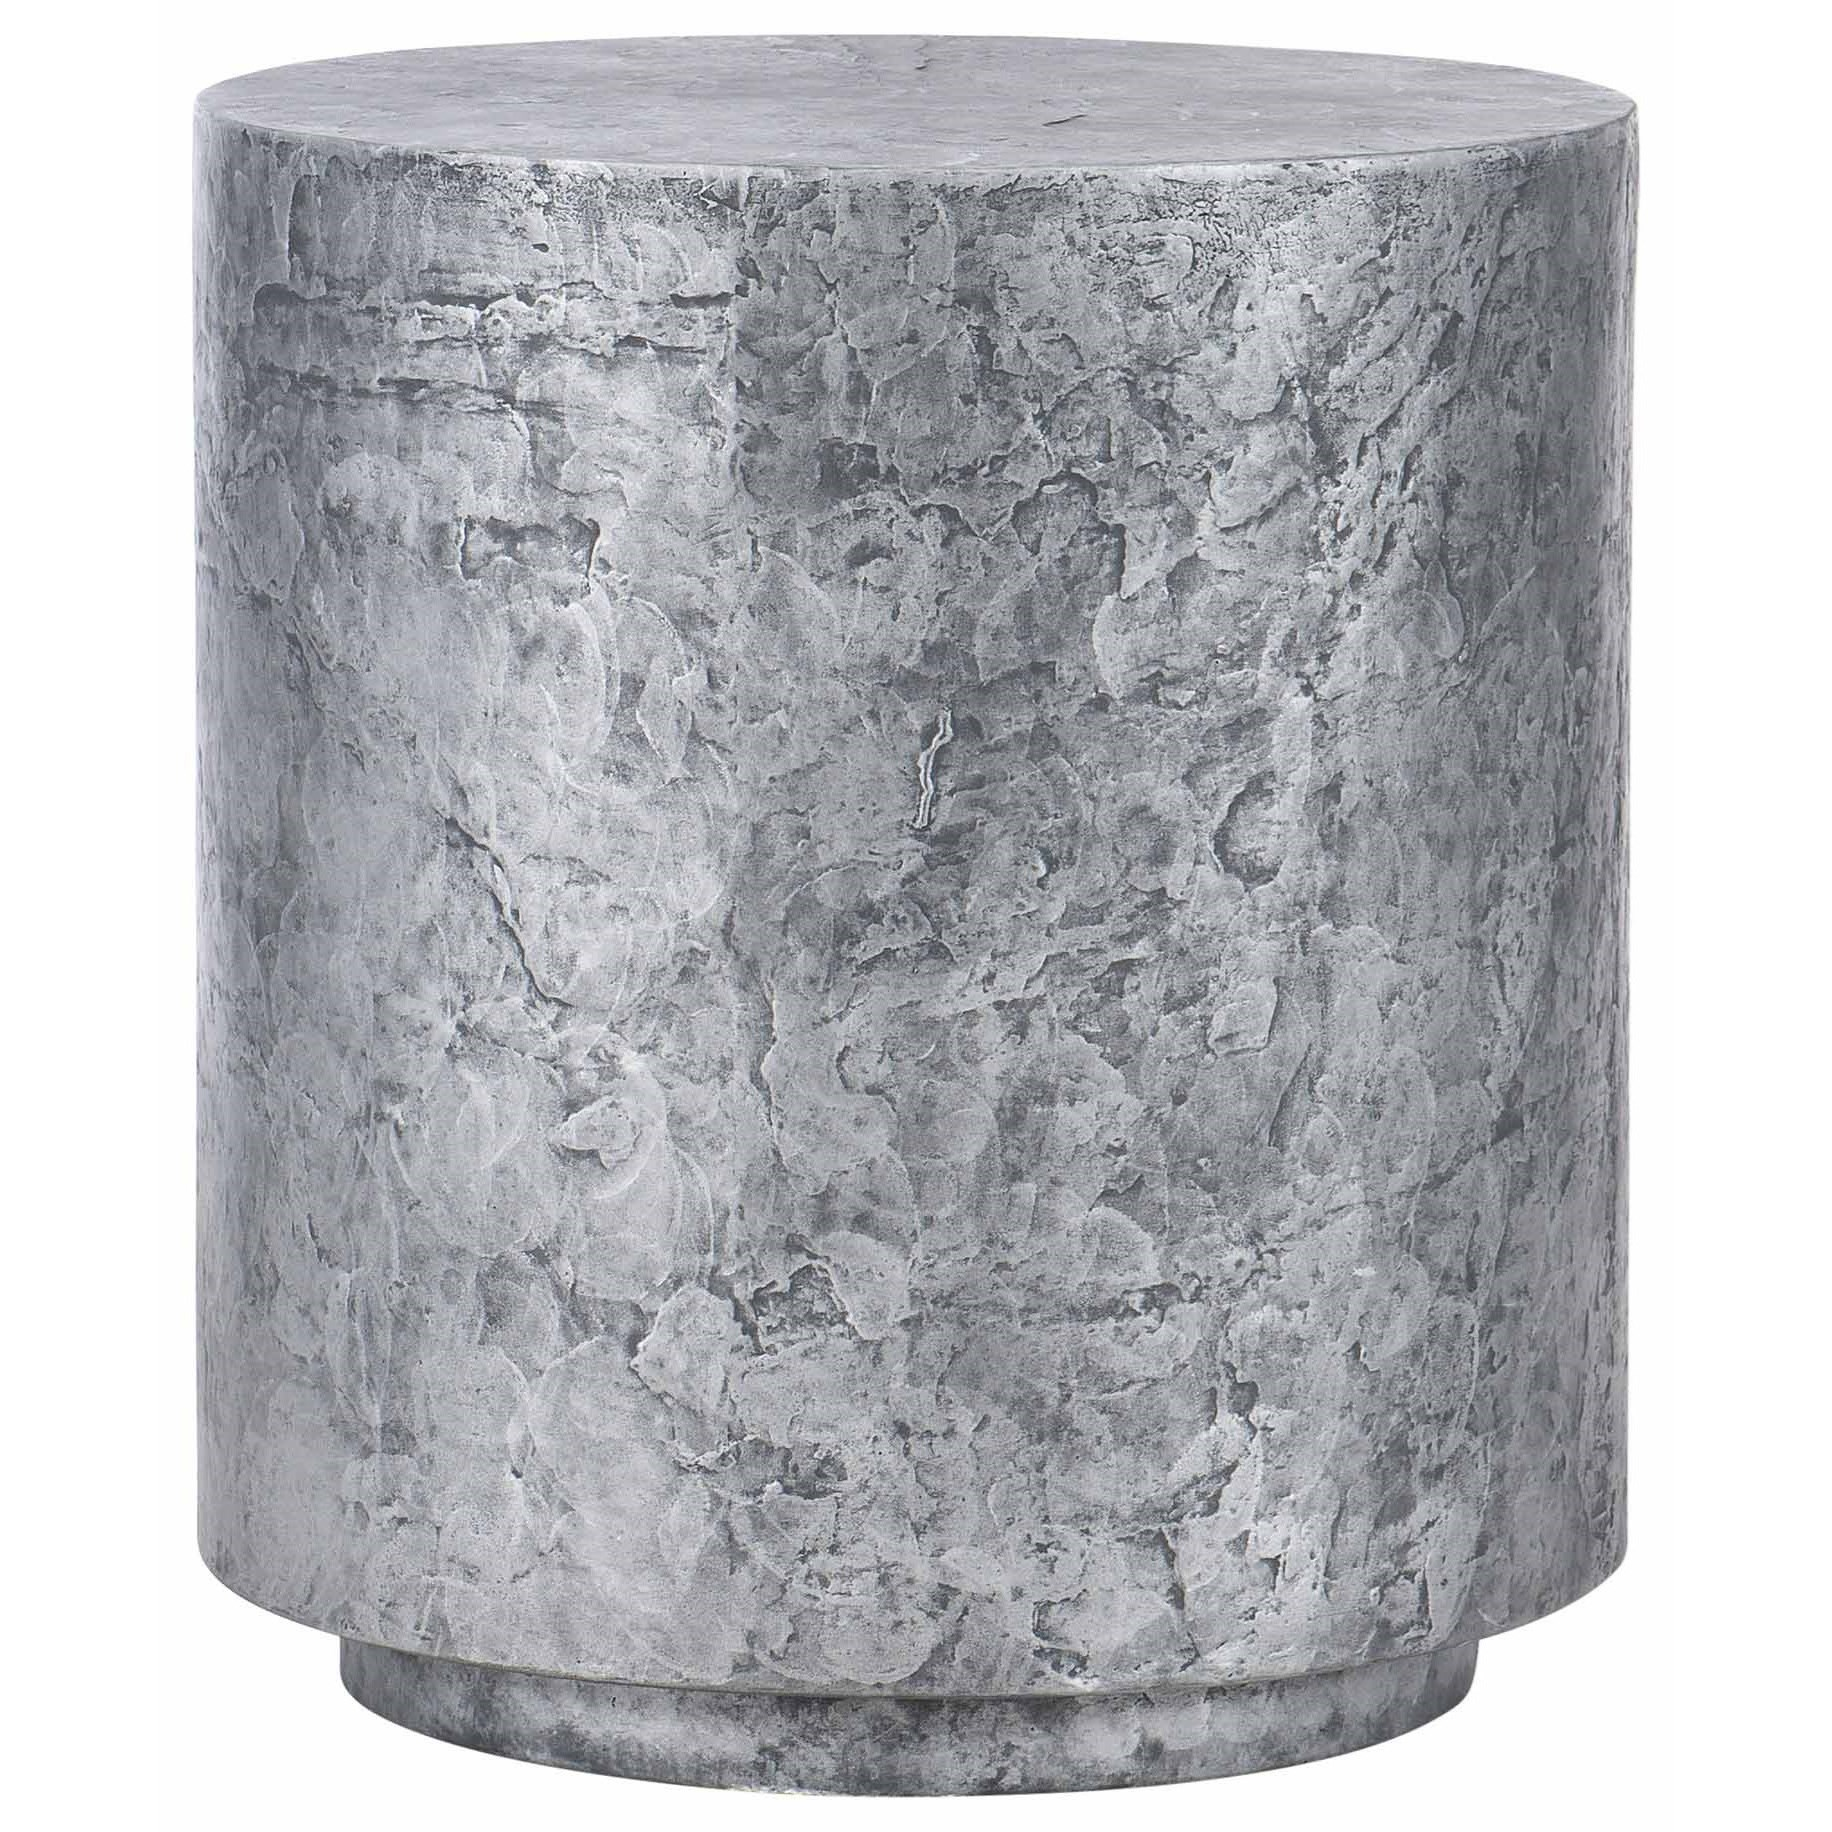 Exteriors - Montecito Outdoor Side Table by Bernhardt at Malouf Furniture Co.